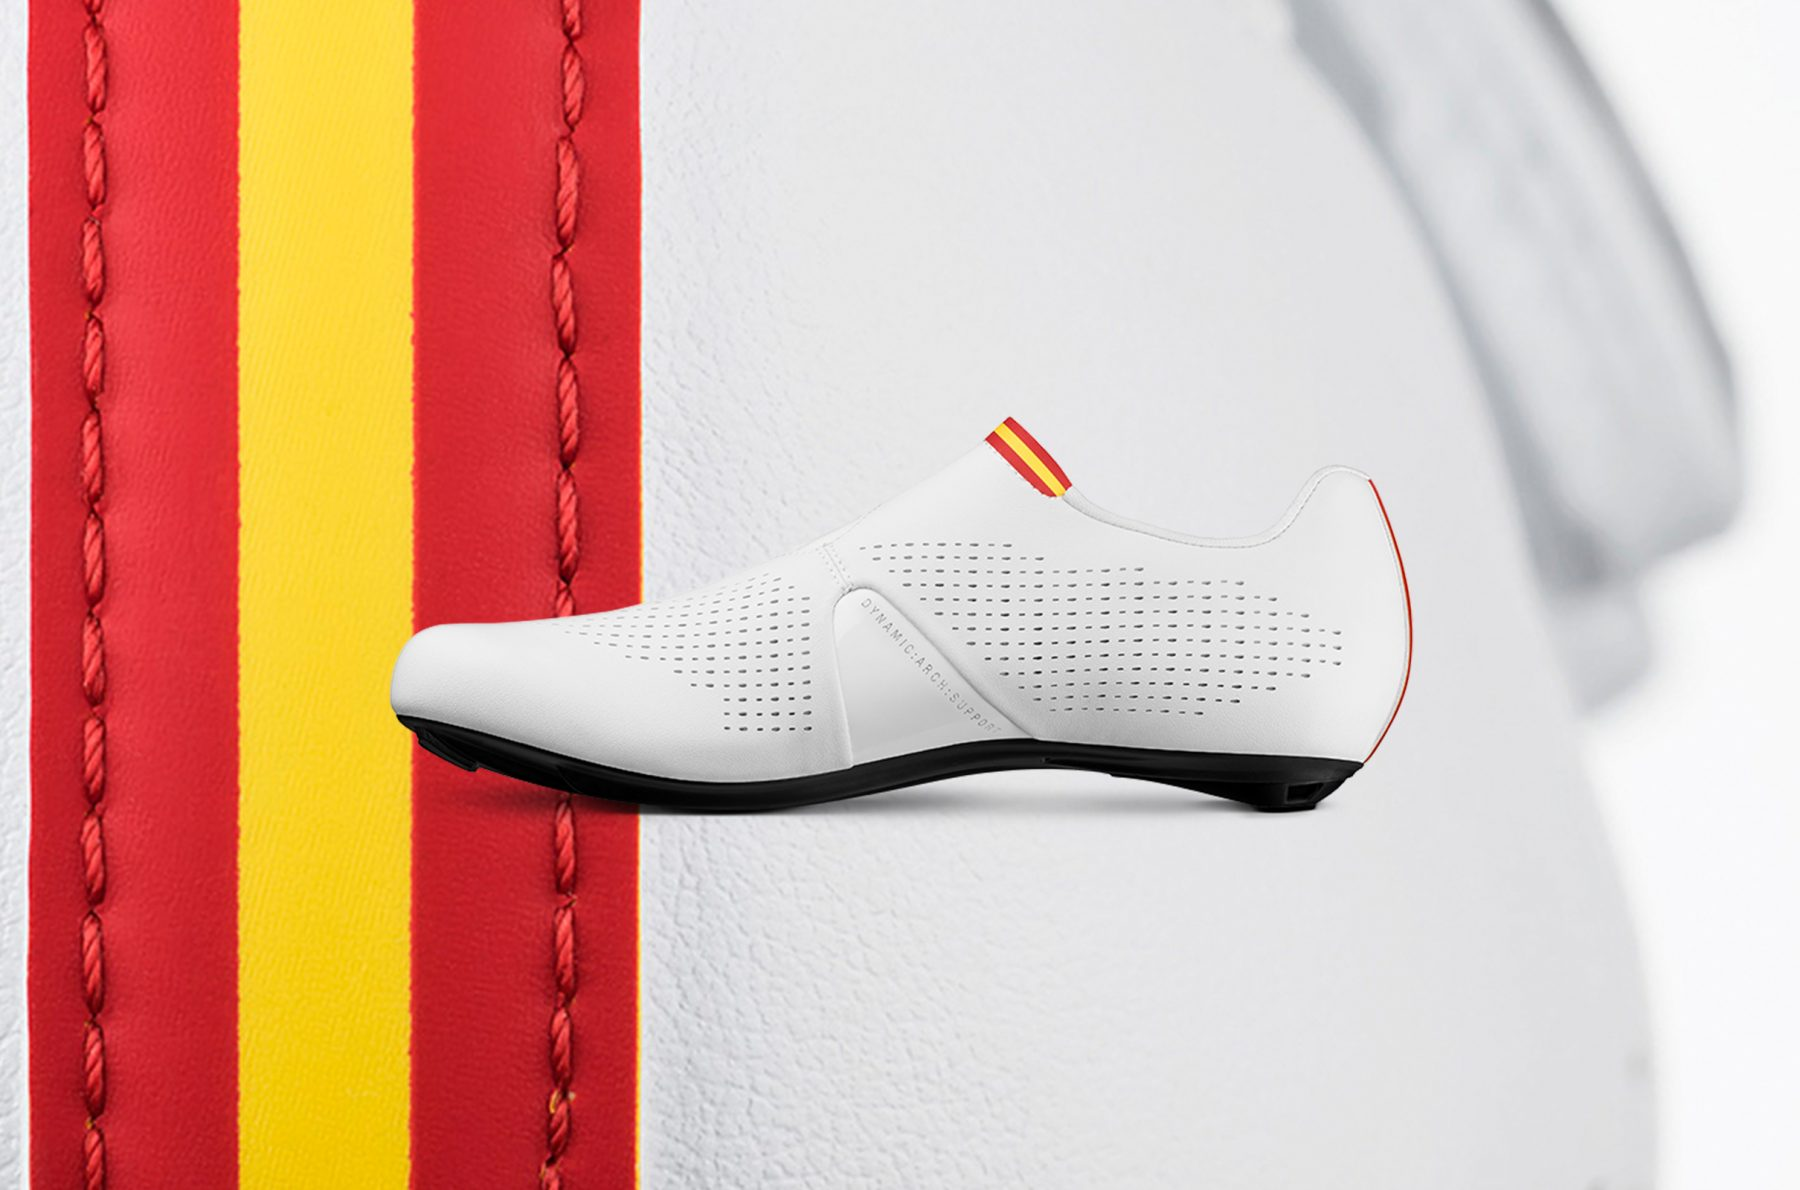 Imagen de la noticia 'Fizik to release Valverde's Infinito R1 shoes – and we've got one pair for you (17-23 junio)'